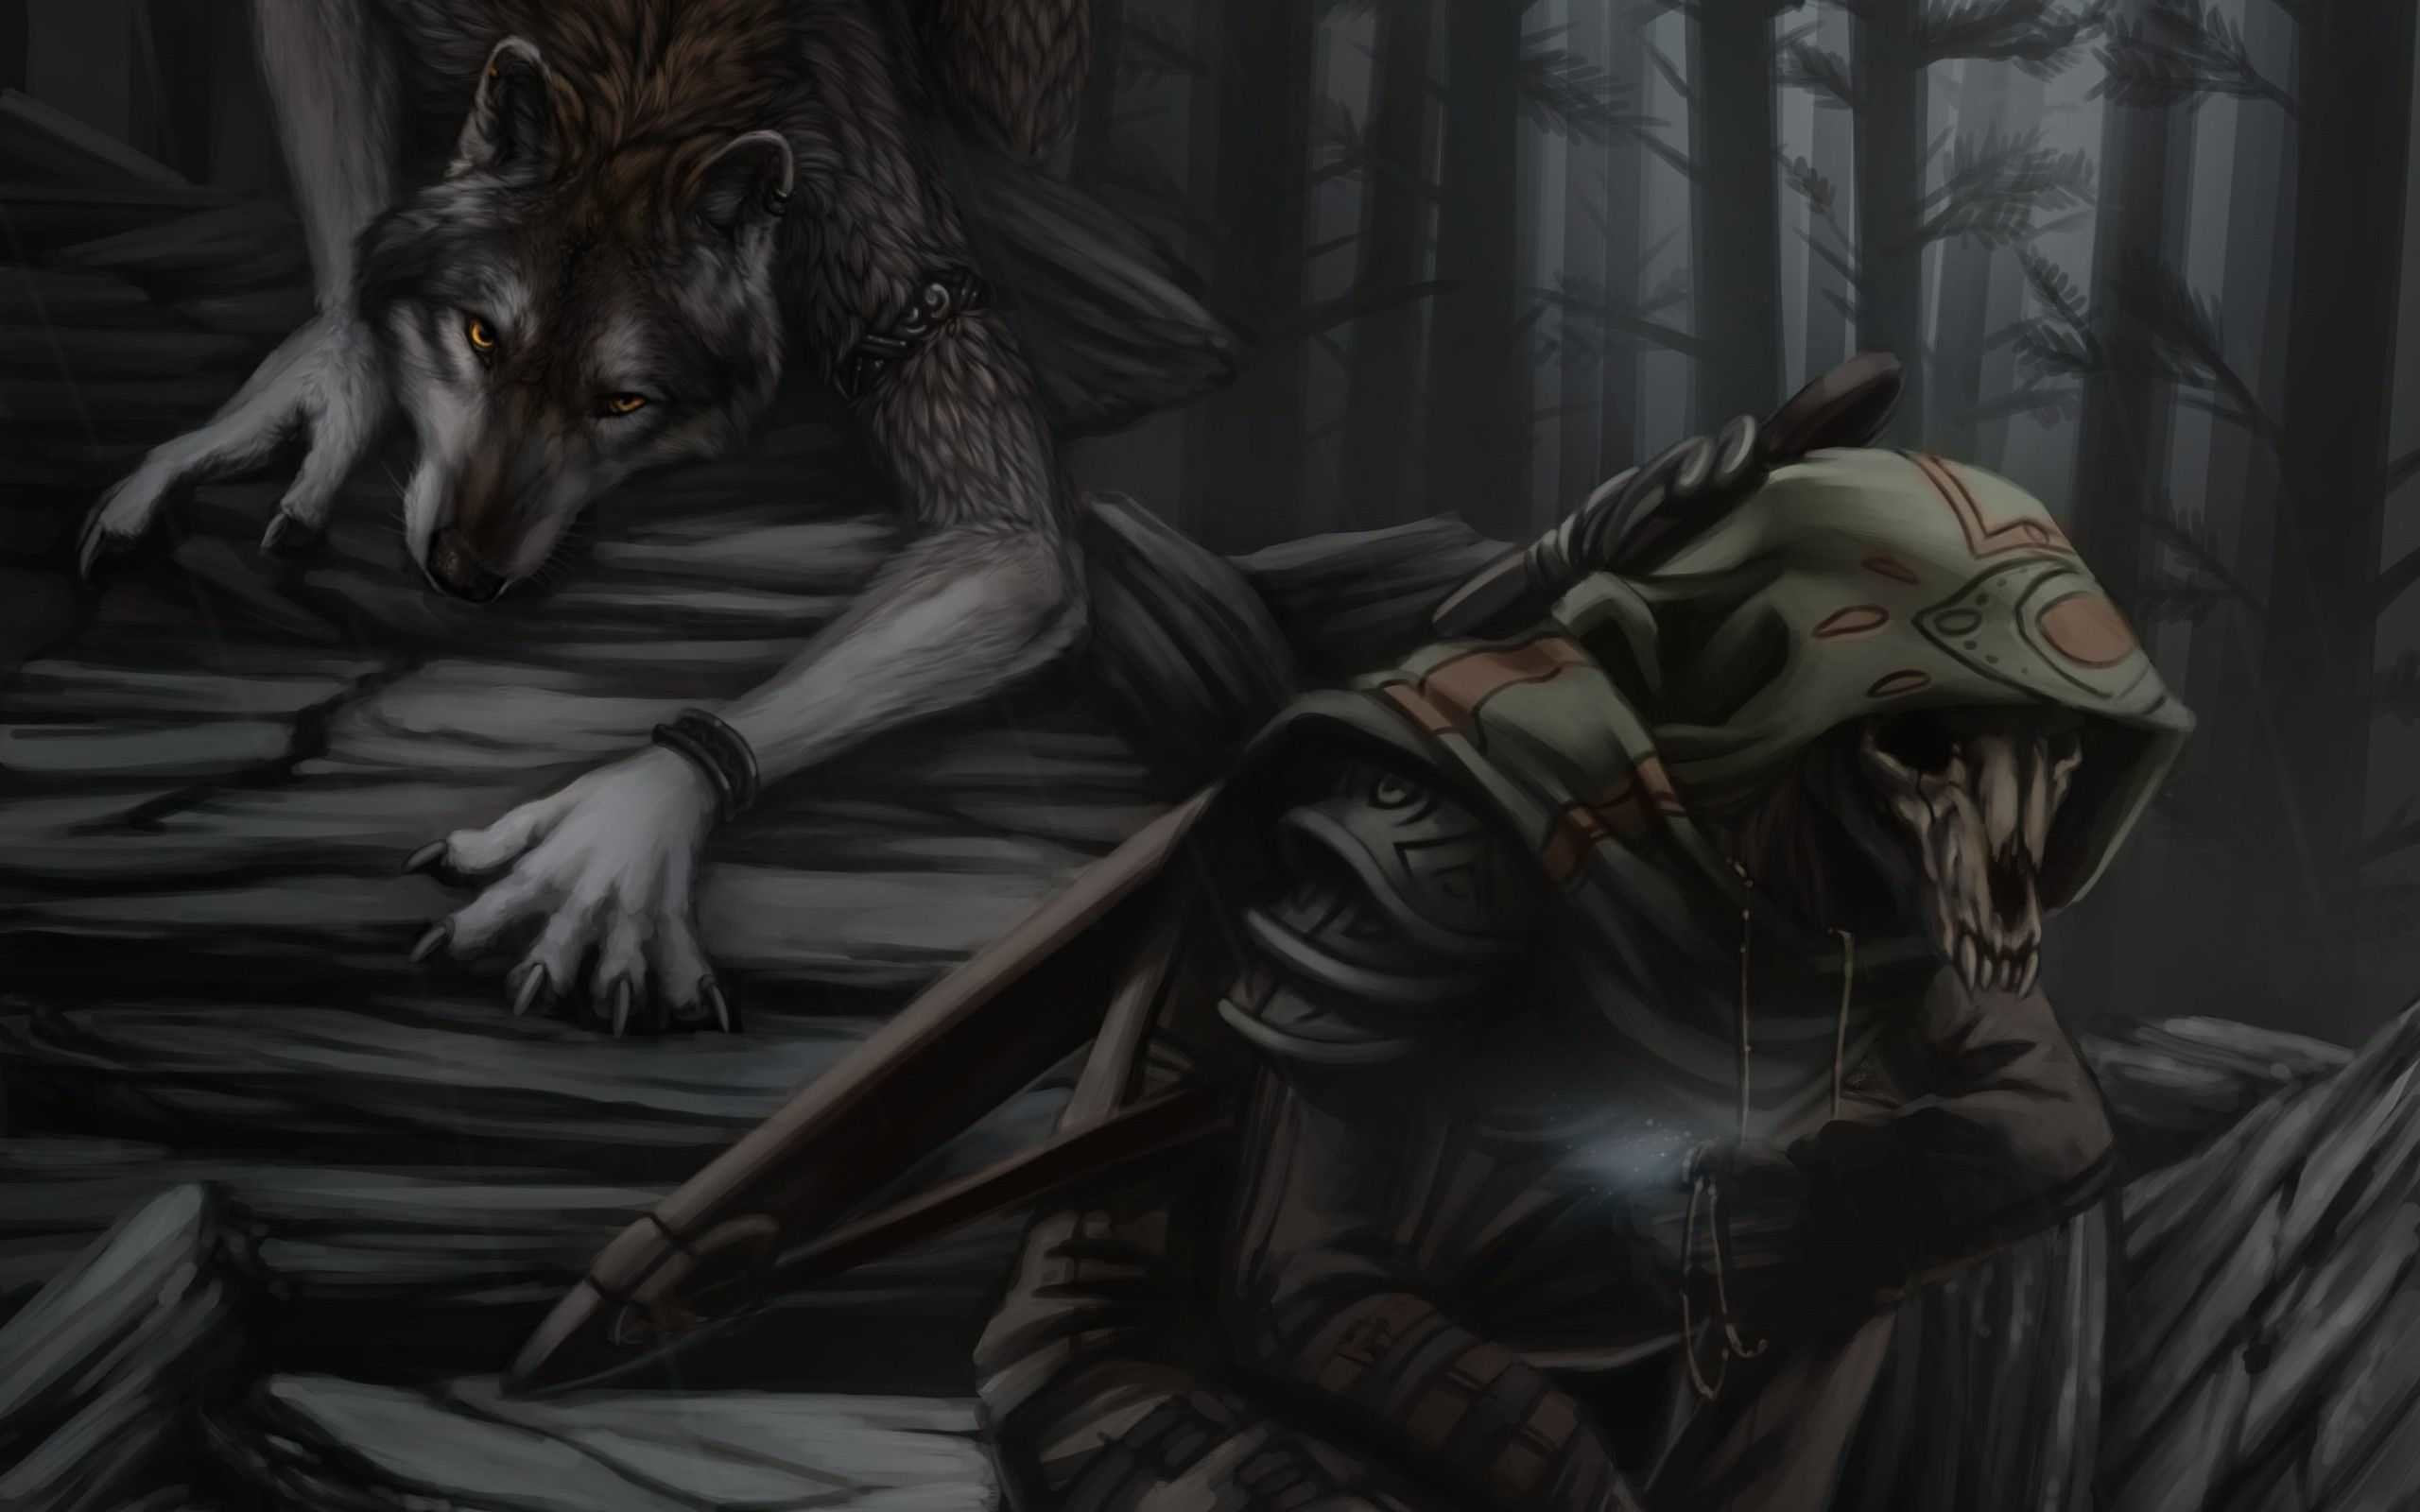 Res: 2560x1600, Grim Reaper Wallpaper Hd Widescreen Werewolf And Fantasy Of Iphone